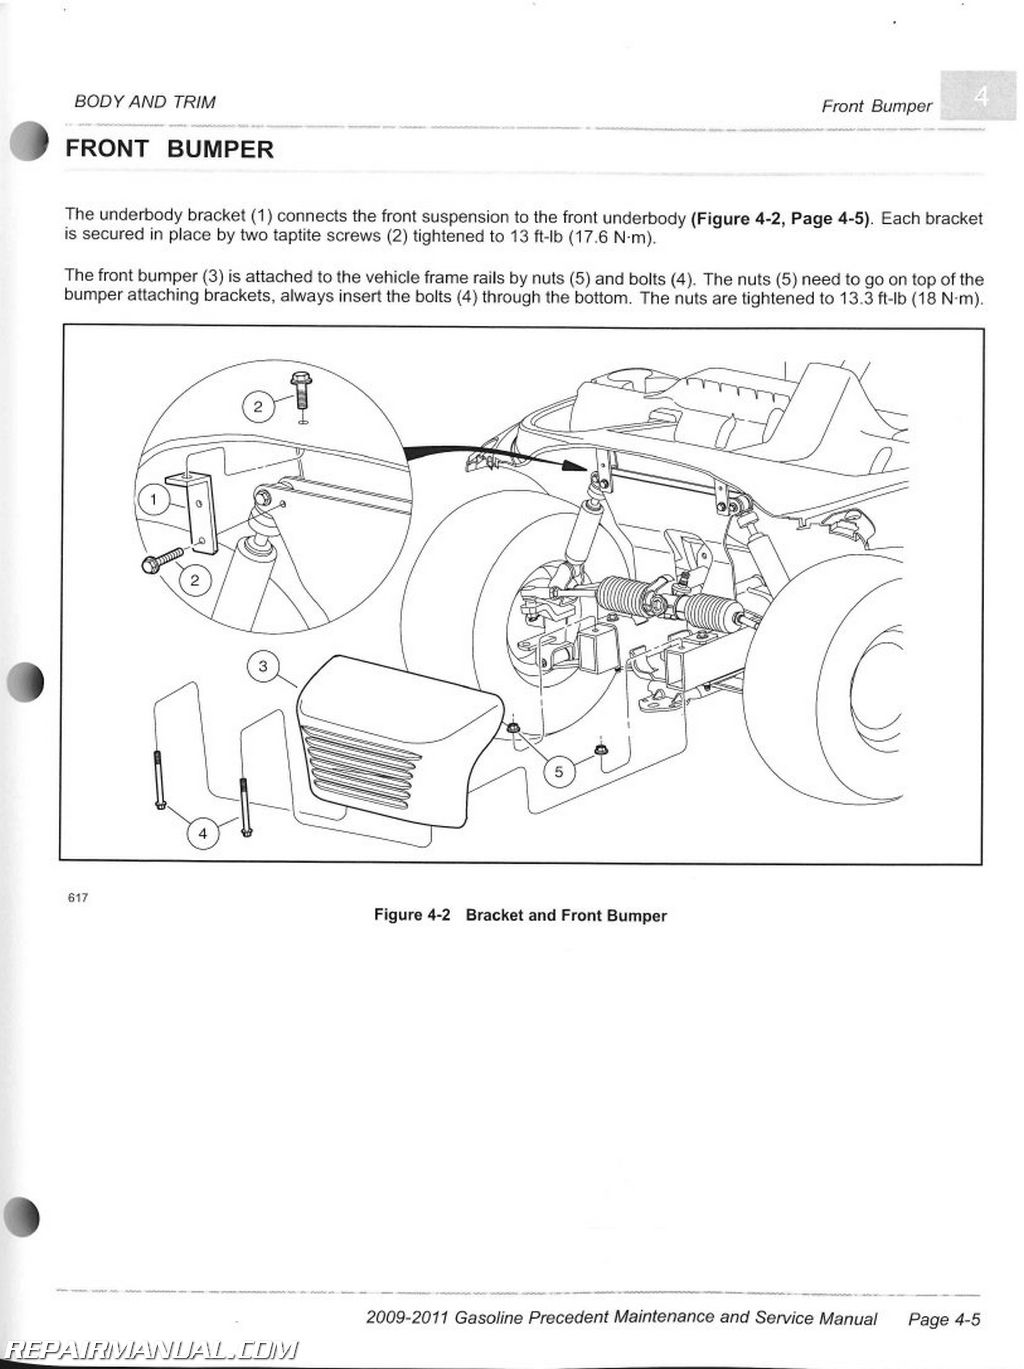 2009 Club Car Wiring Diagram Another Blog About Gas 2011 Gasoline Precedent Maintenance And